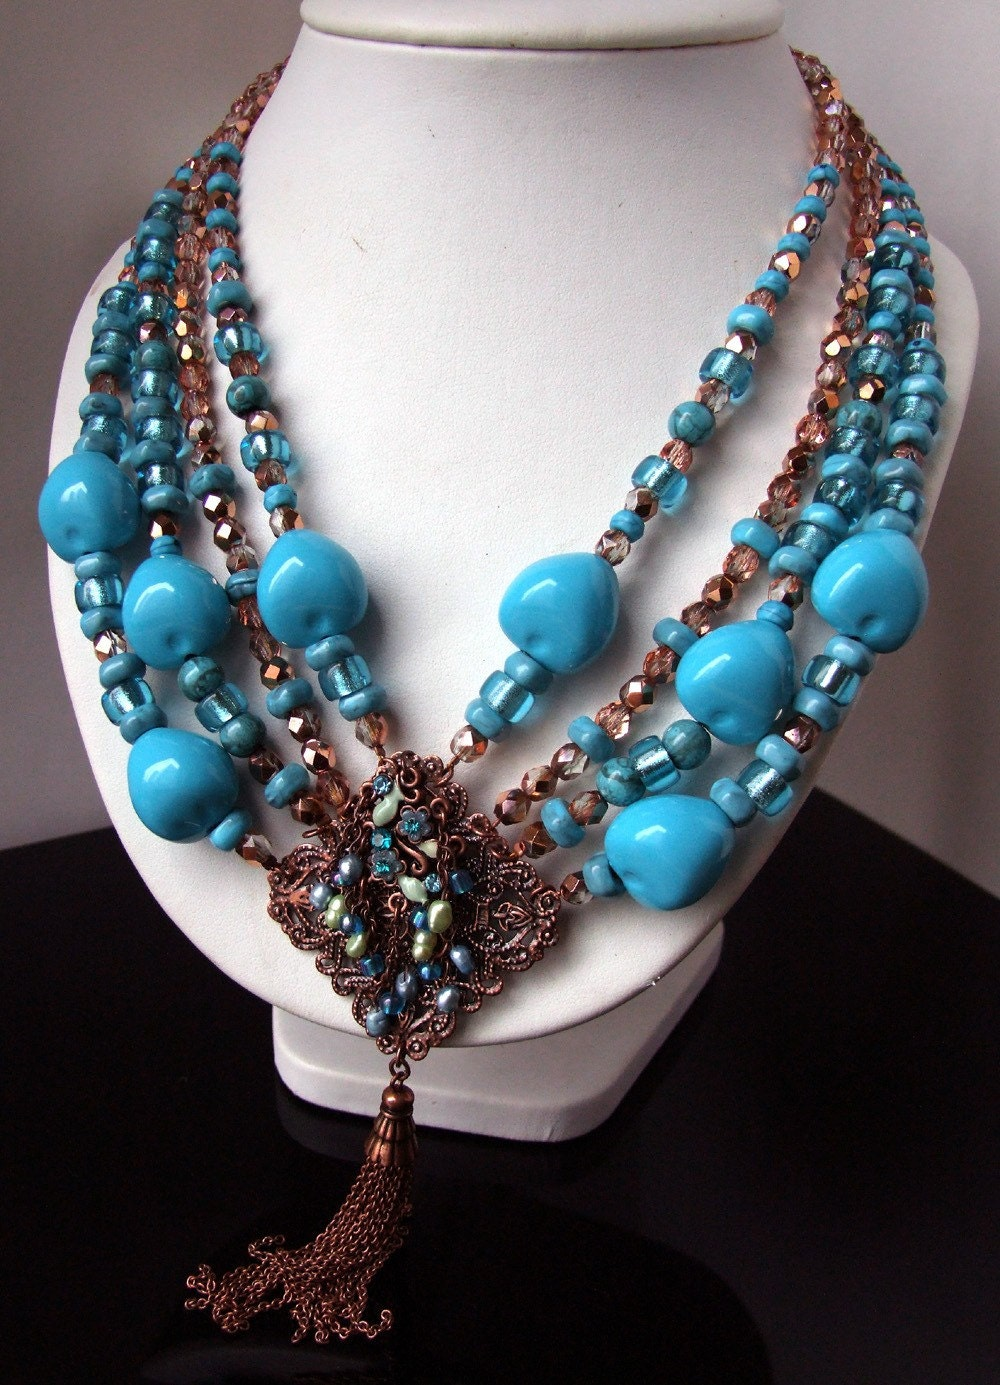 Turcq Odalisque - one of a kind necklace in turquoise and copper colors